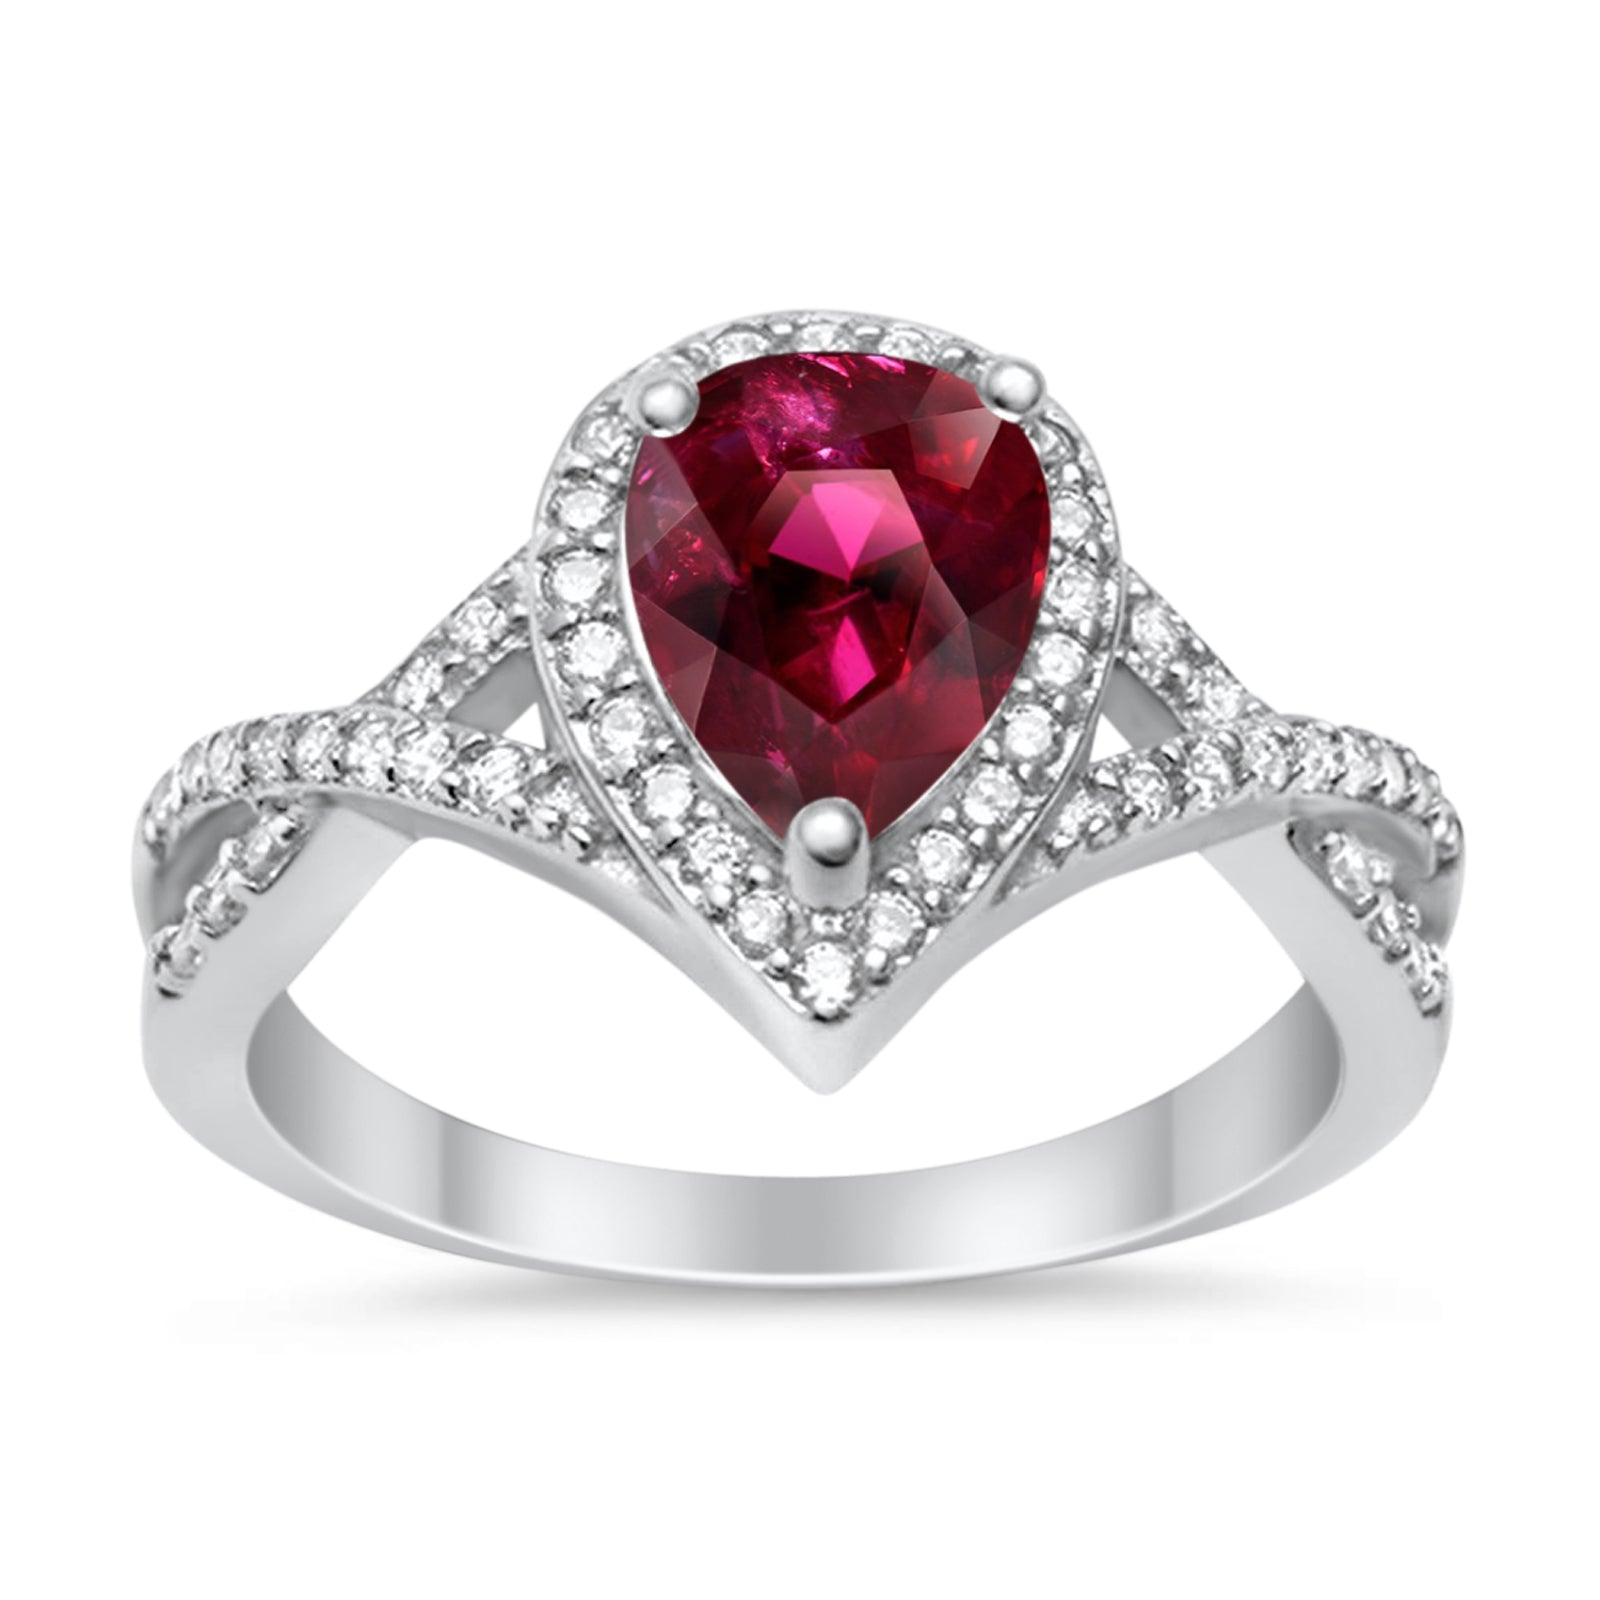 Teardrop Wedding Promise Ring Infinity Round Simulated Ruby CZ 925 Sterling Silver